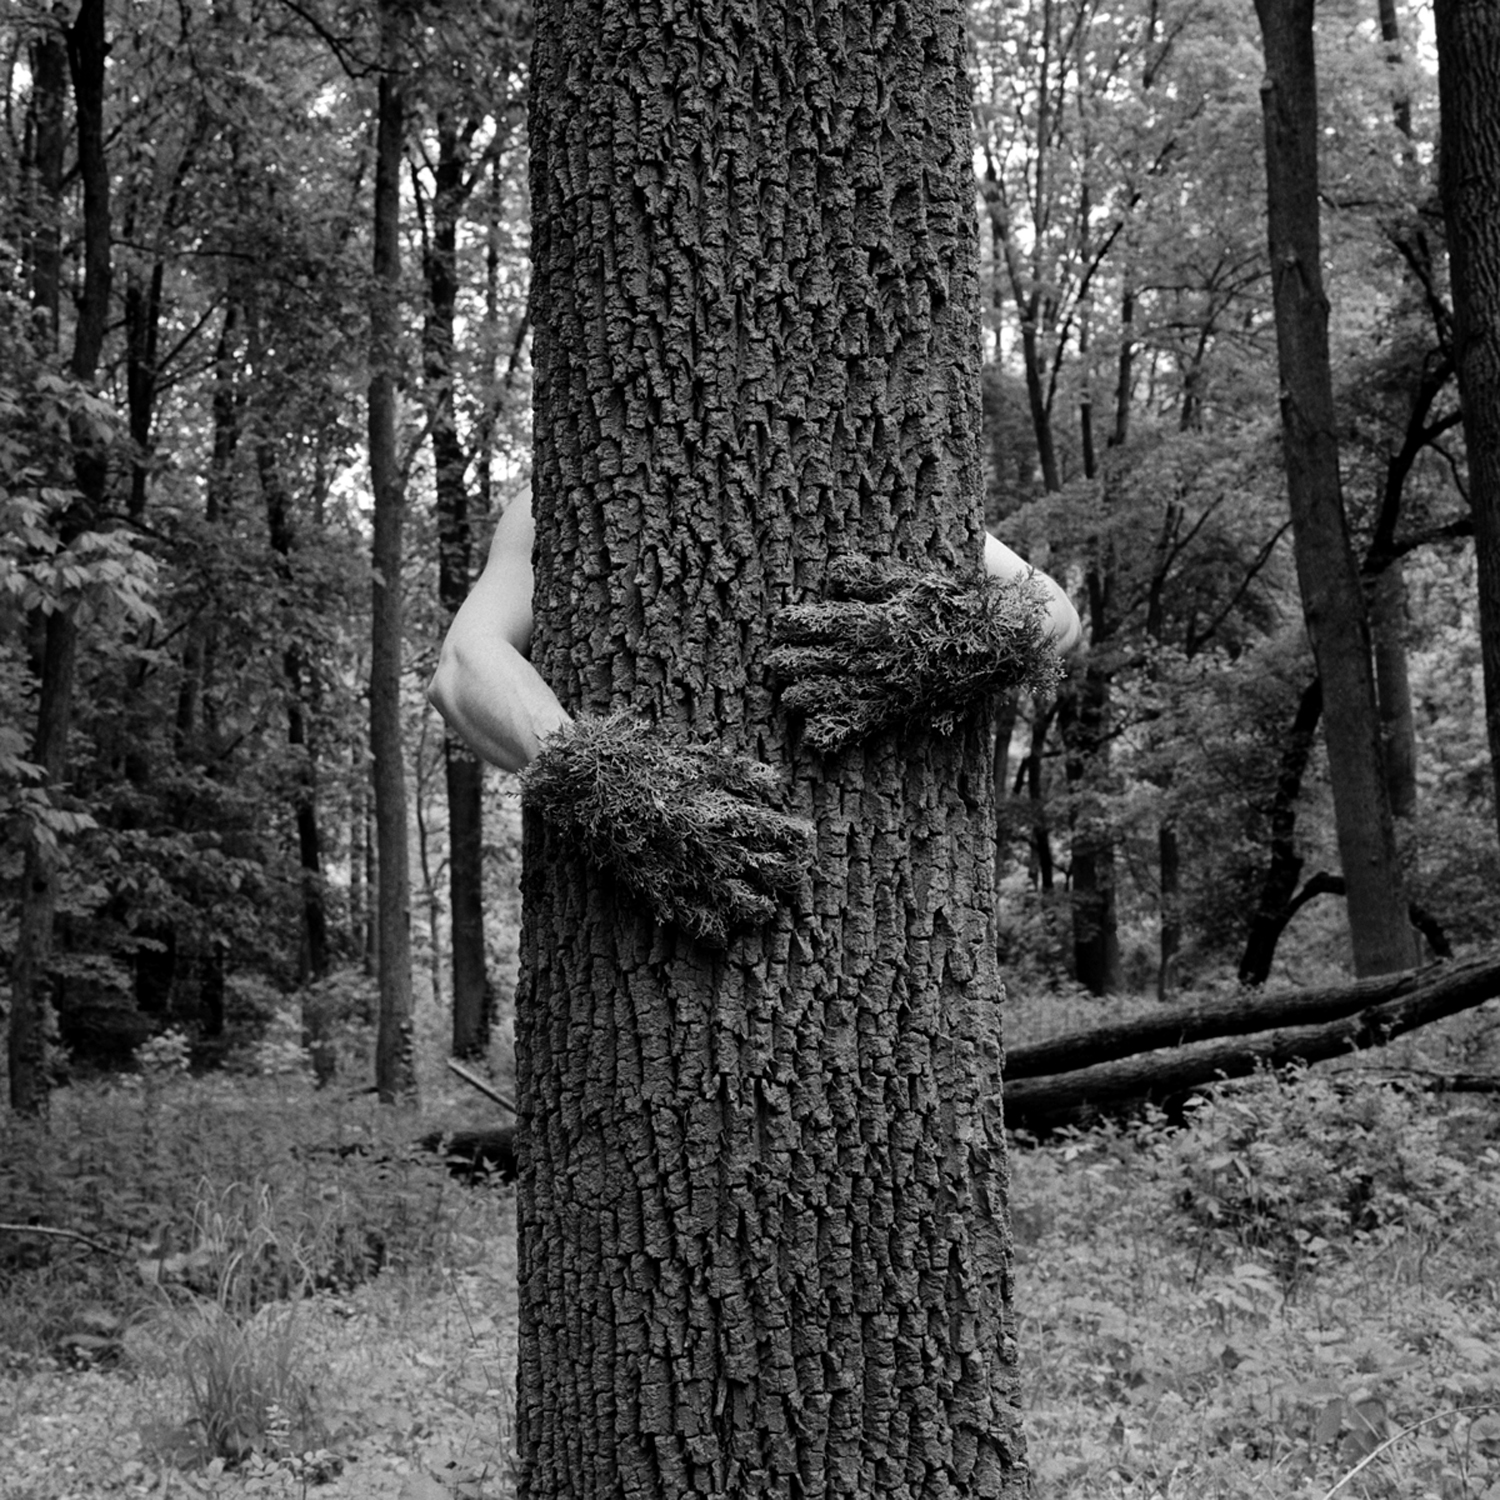 Tree Hug, 2005, archival pigment print on paper